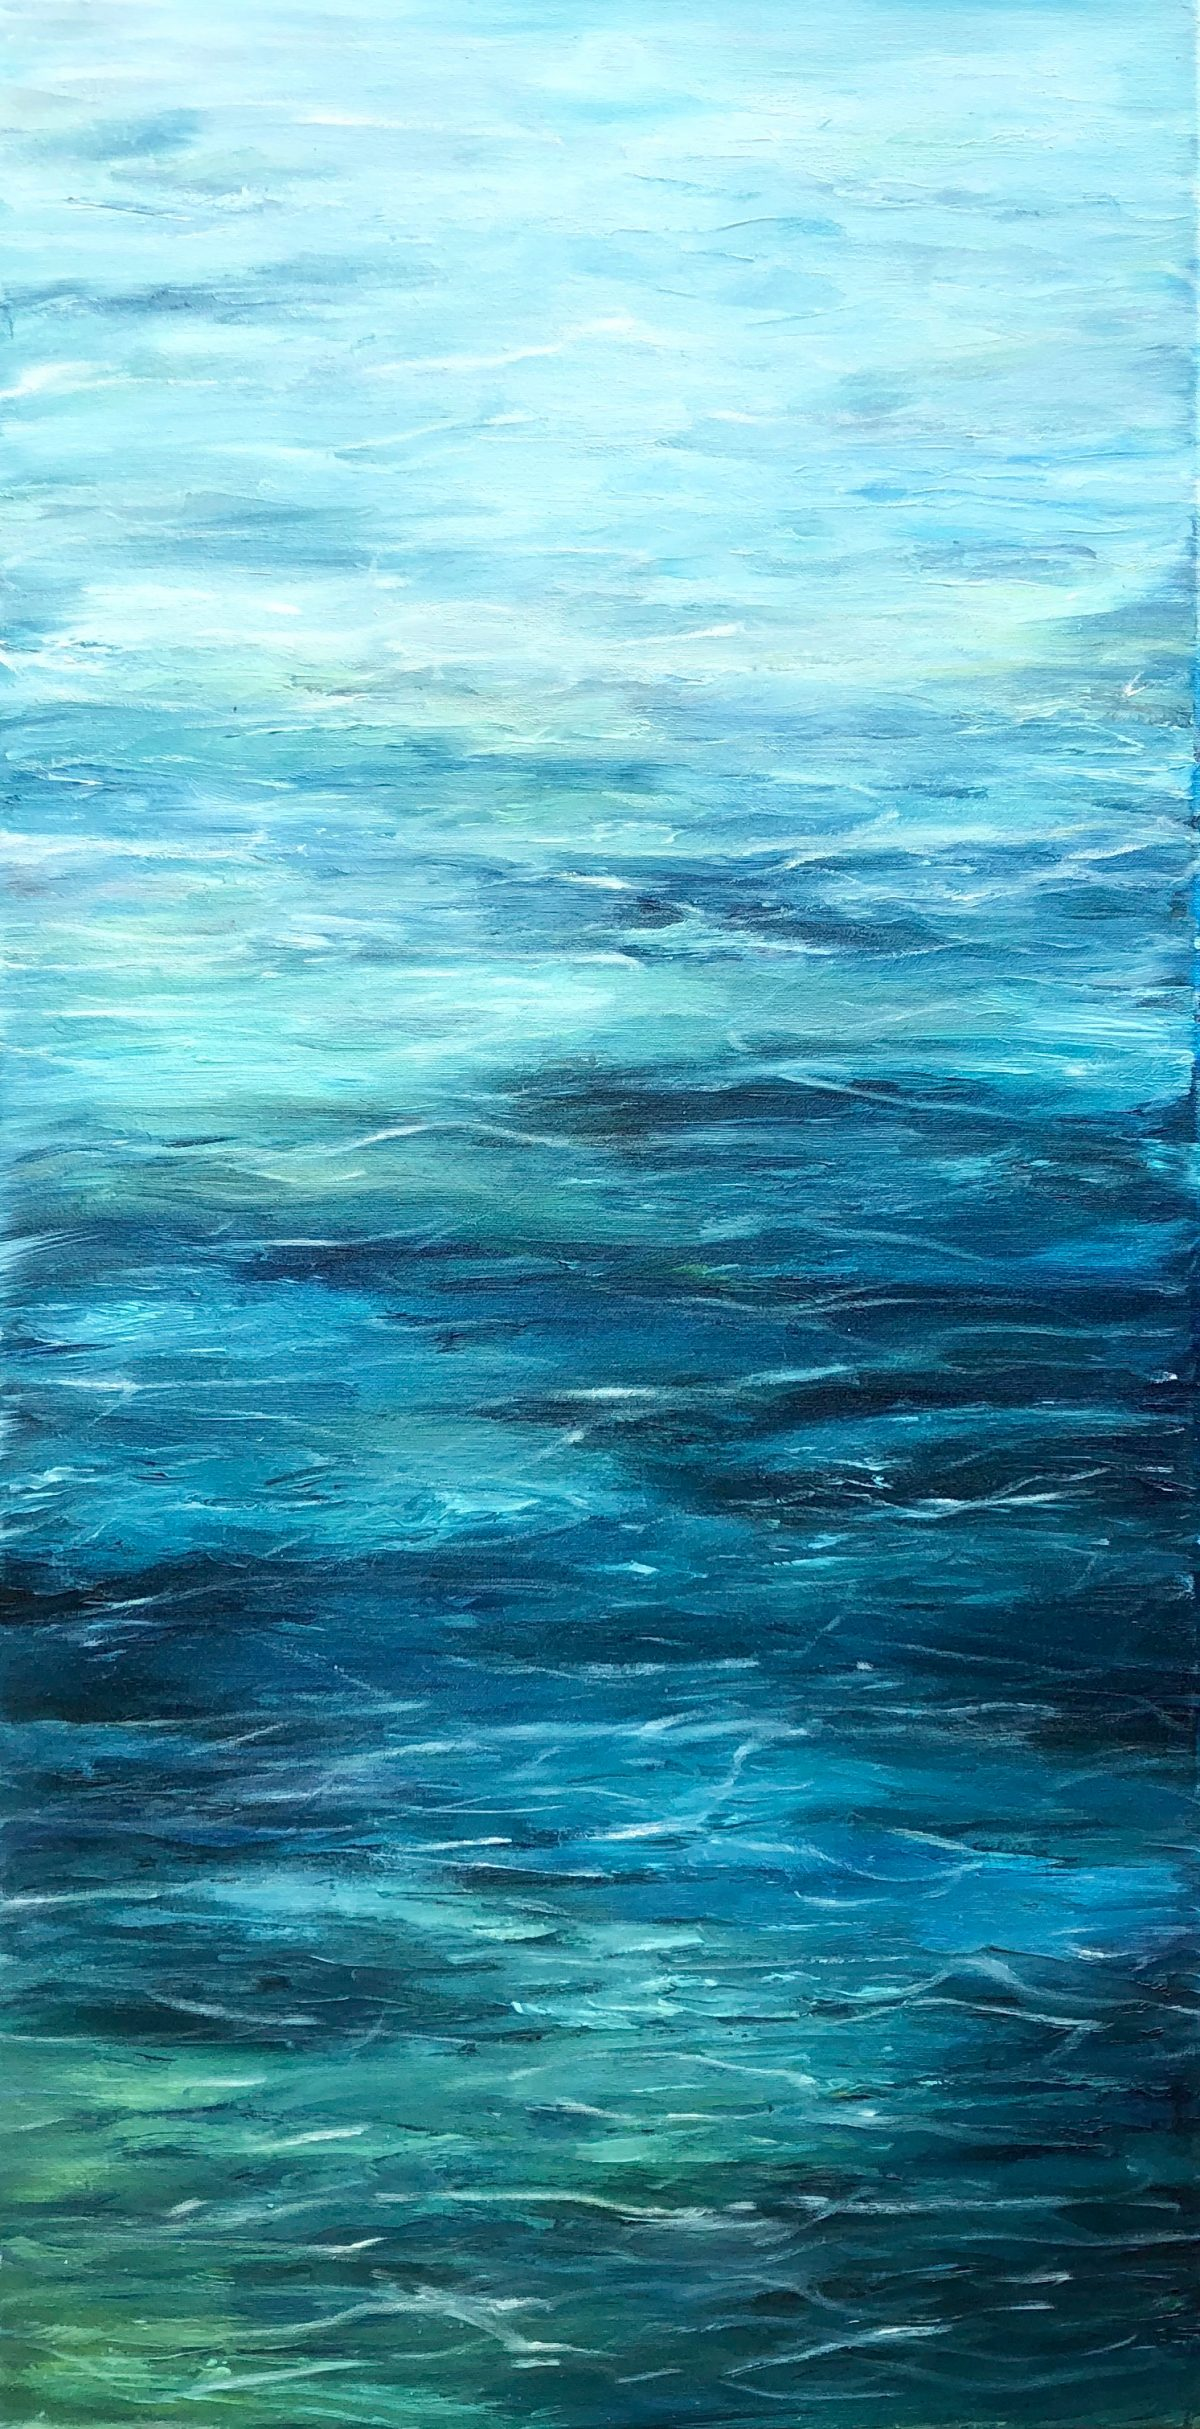 """""""Turquoise sea"""" by Devon based artist Catherine Kennedy. Oil on canvas painting measuring: 50 x 100cm of shallow water with blues, turquoise, green and indigo ripples. The first the series of """"Tranquil"""" paintings."""